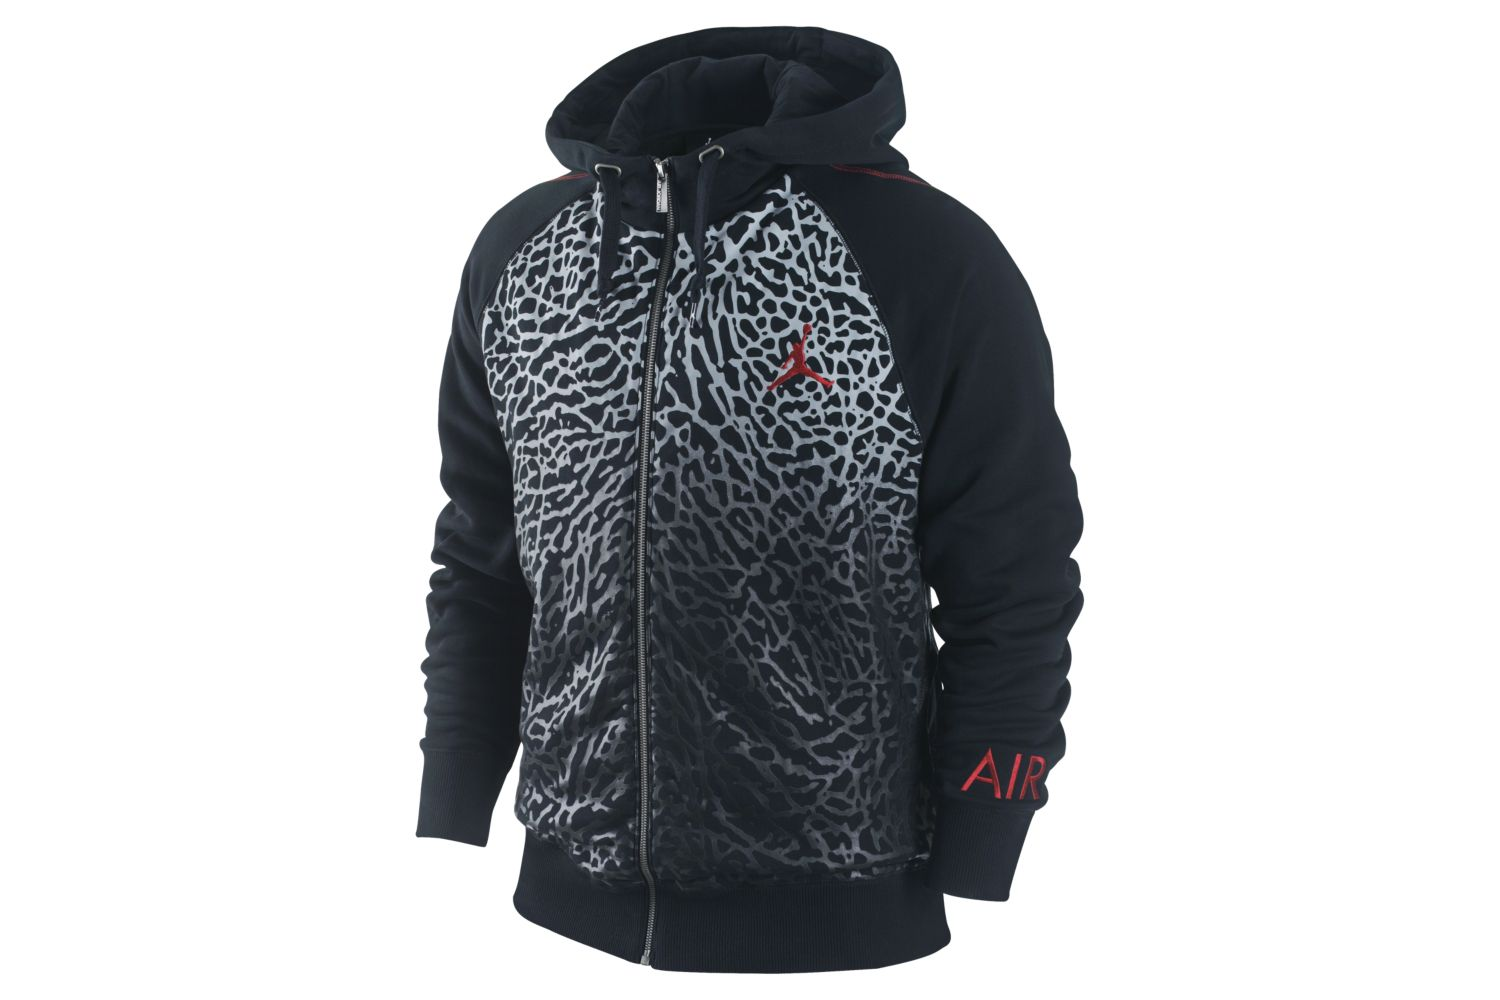 air jordan iii hoodie air jordans release dates more. Black Bedroom Furniture Sets. Home Design Ideas